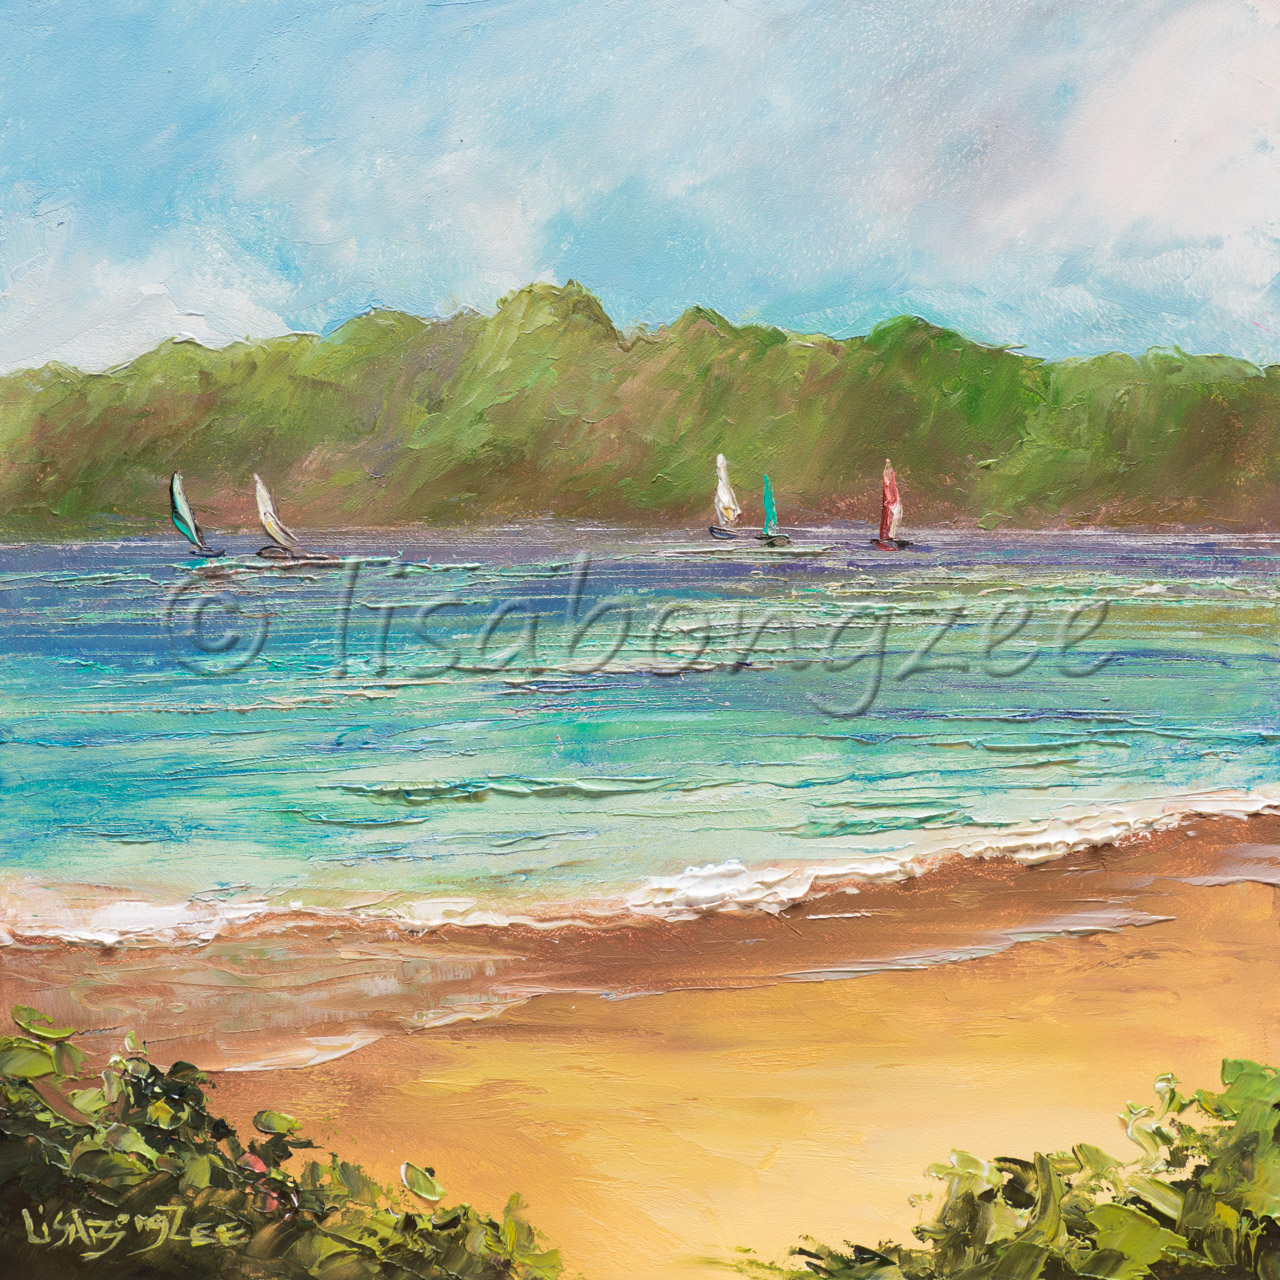 original oil painting of a calm beach with five various colored sail boats in the distance